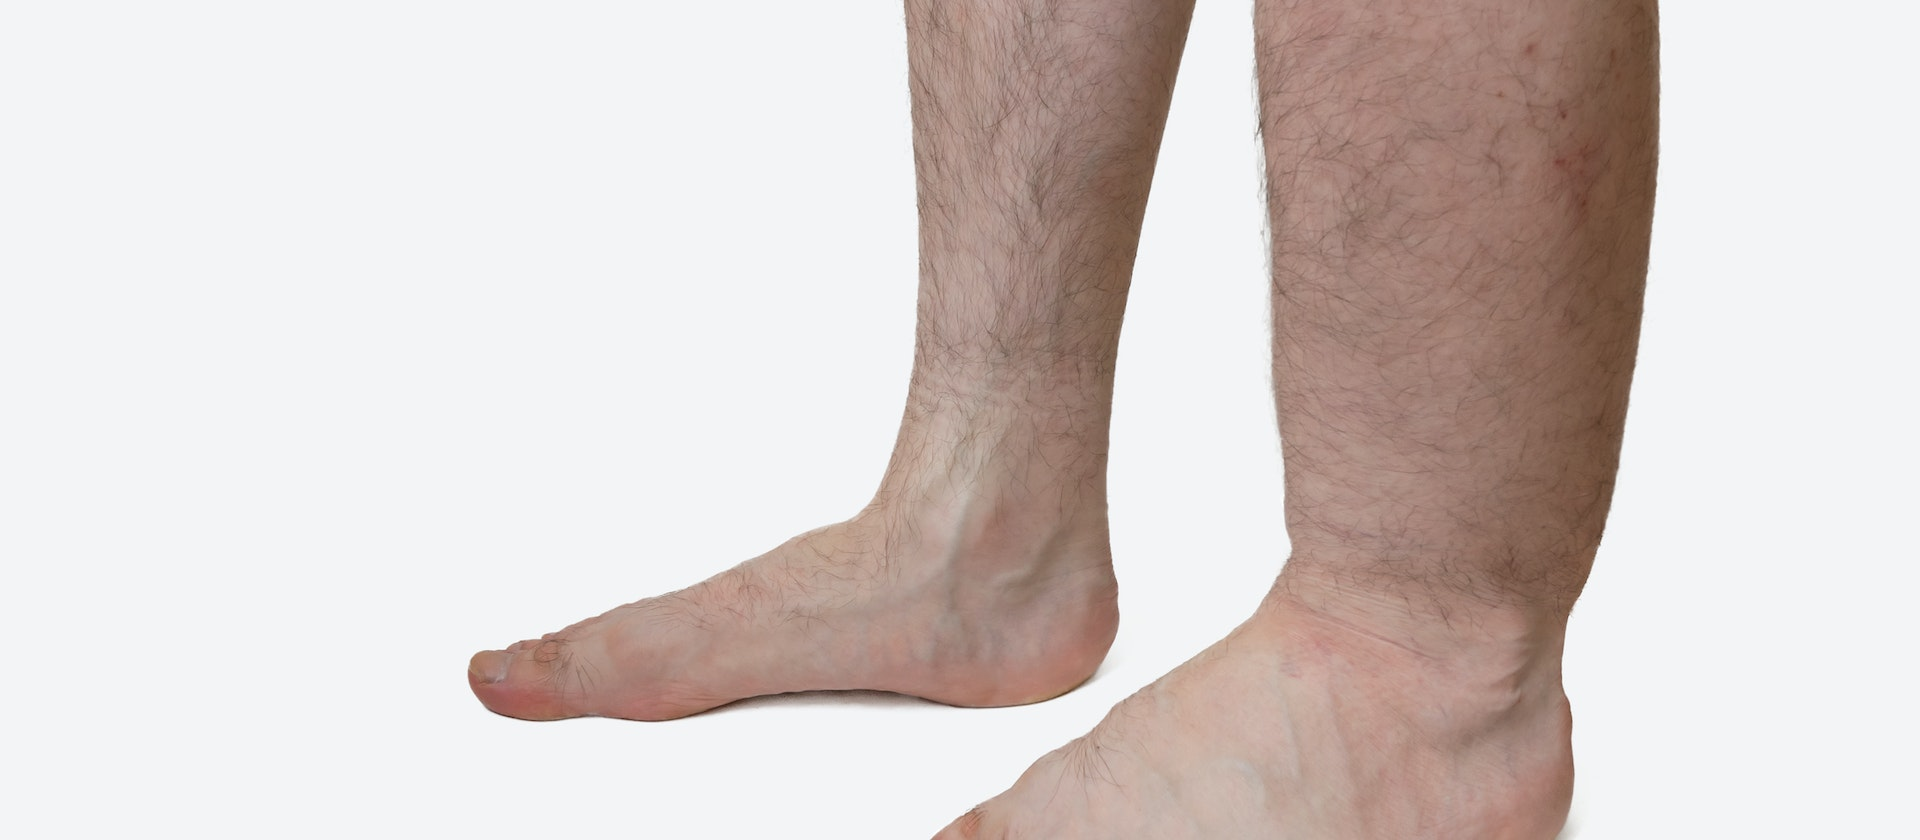 Swelling In One Lower Leg Symptoms Causes Common Questions Buoy